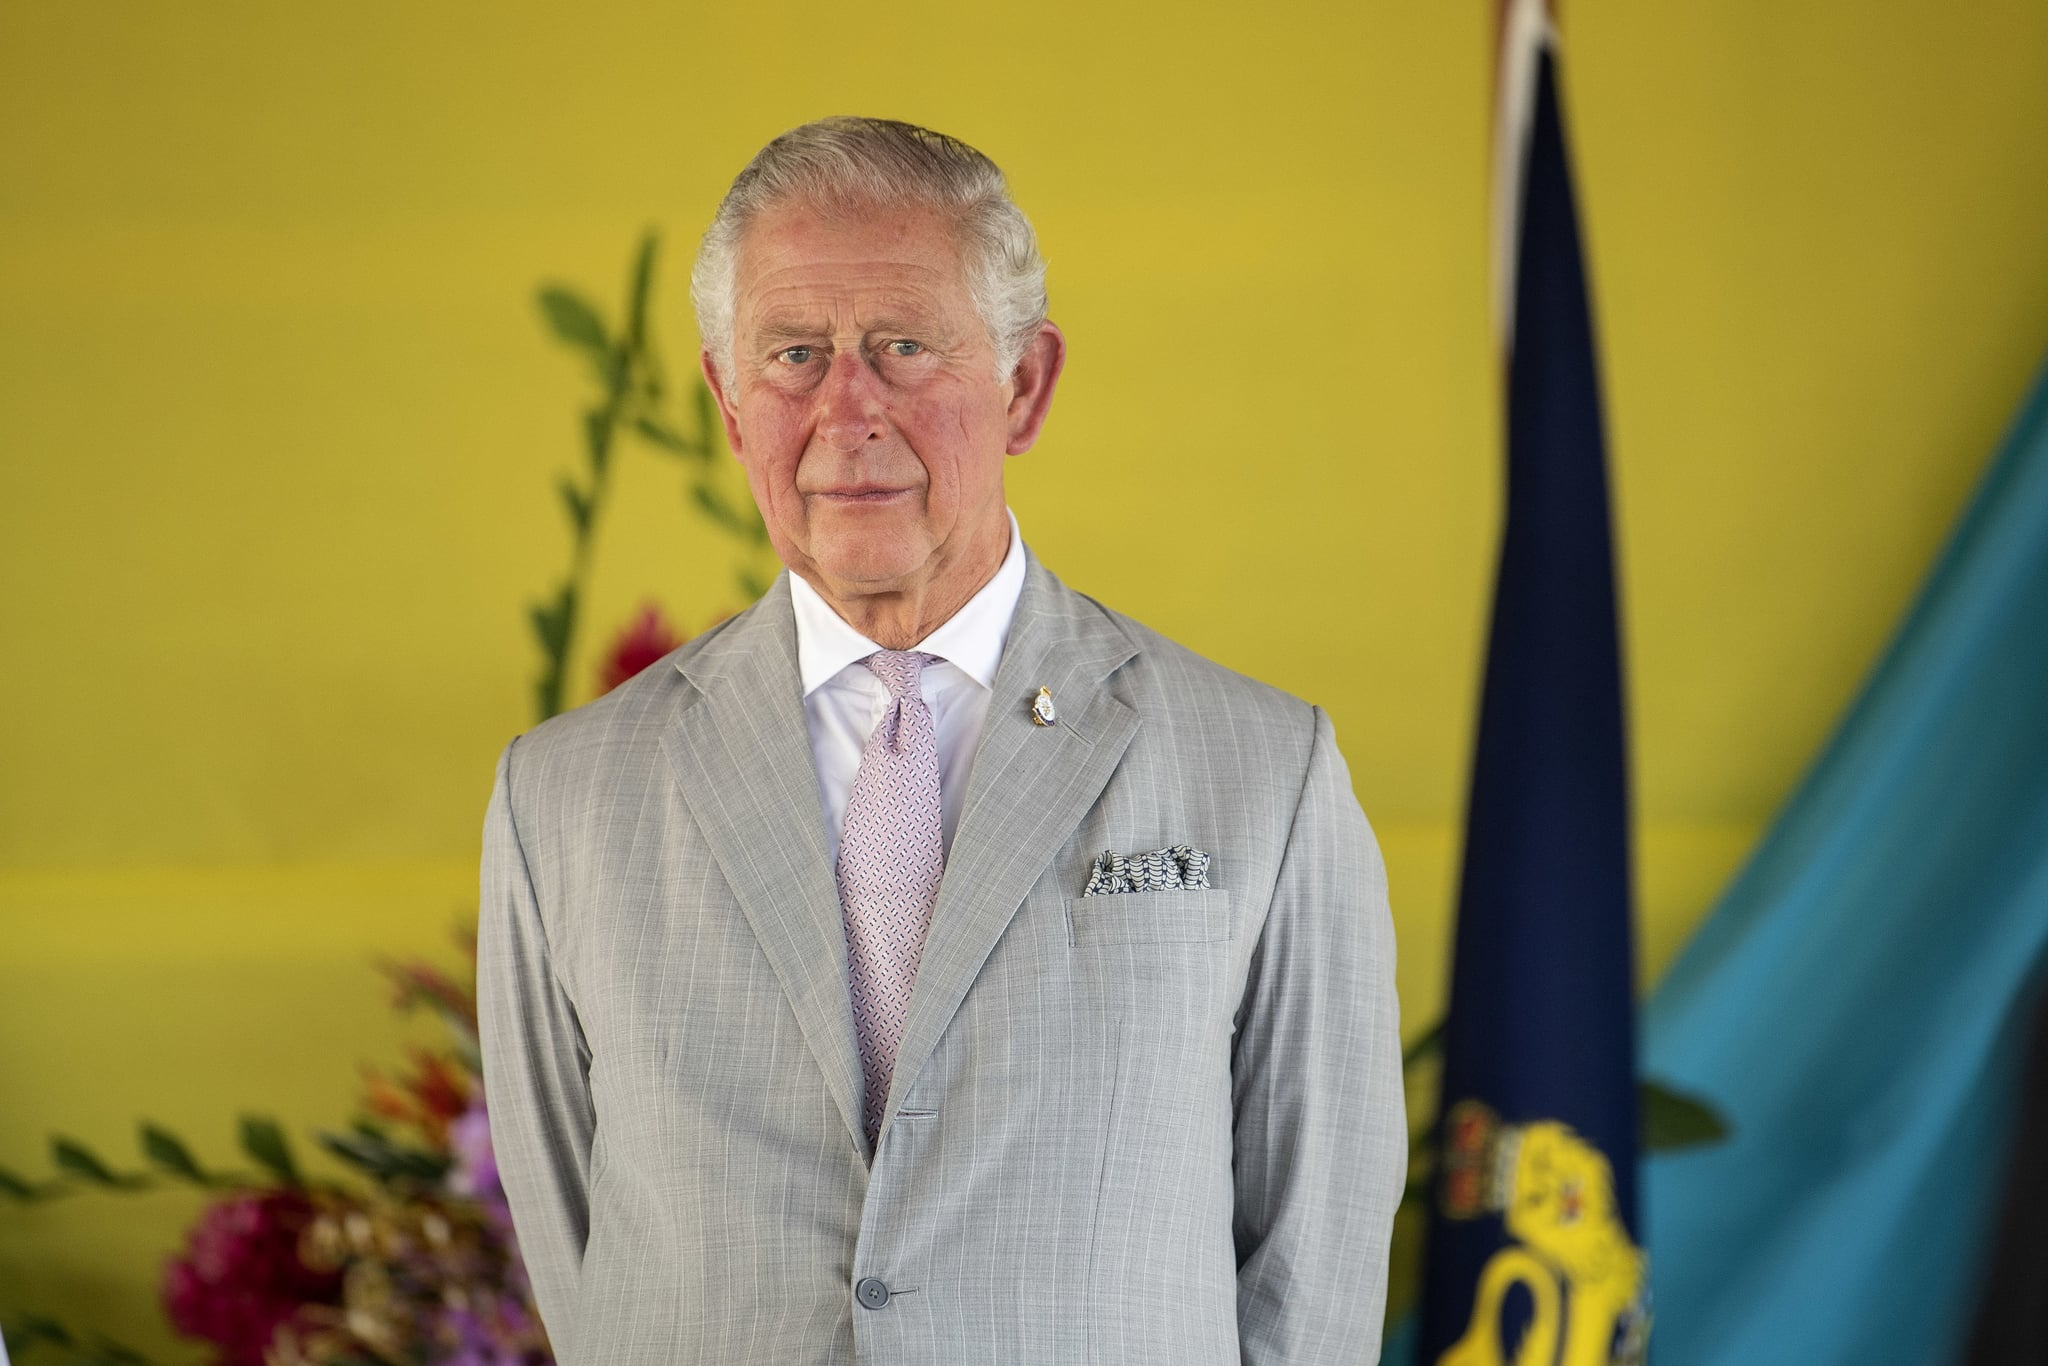 HONIARA, GUADALCANAL ISLAND, SOLOMON ISLANDS - NOVEMBER 24: Prince Charles, The Prince of Wales undertakes investitures at Government House on the second day of the royal visit, 24th November 24, 2019 in Honiara, Solomon Islands. (Photo by Victoria Jones - Pool/Getty Images)